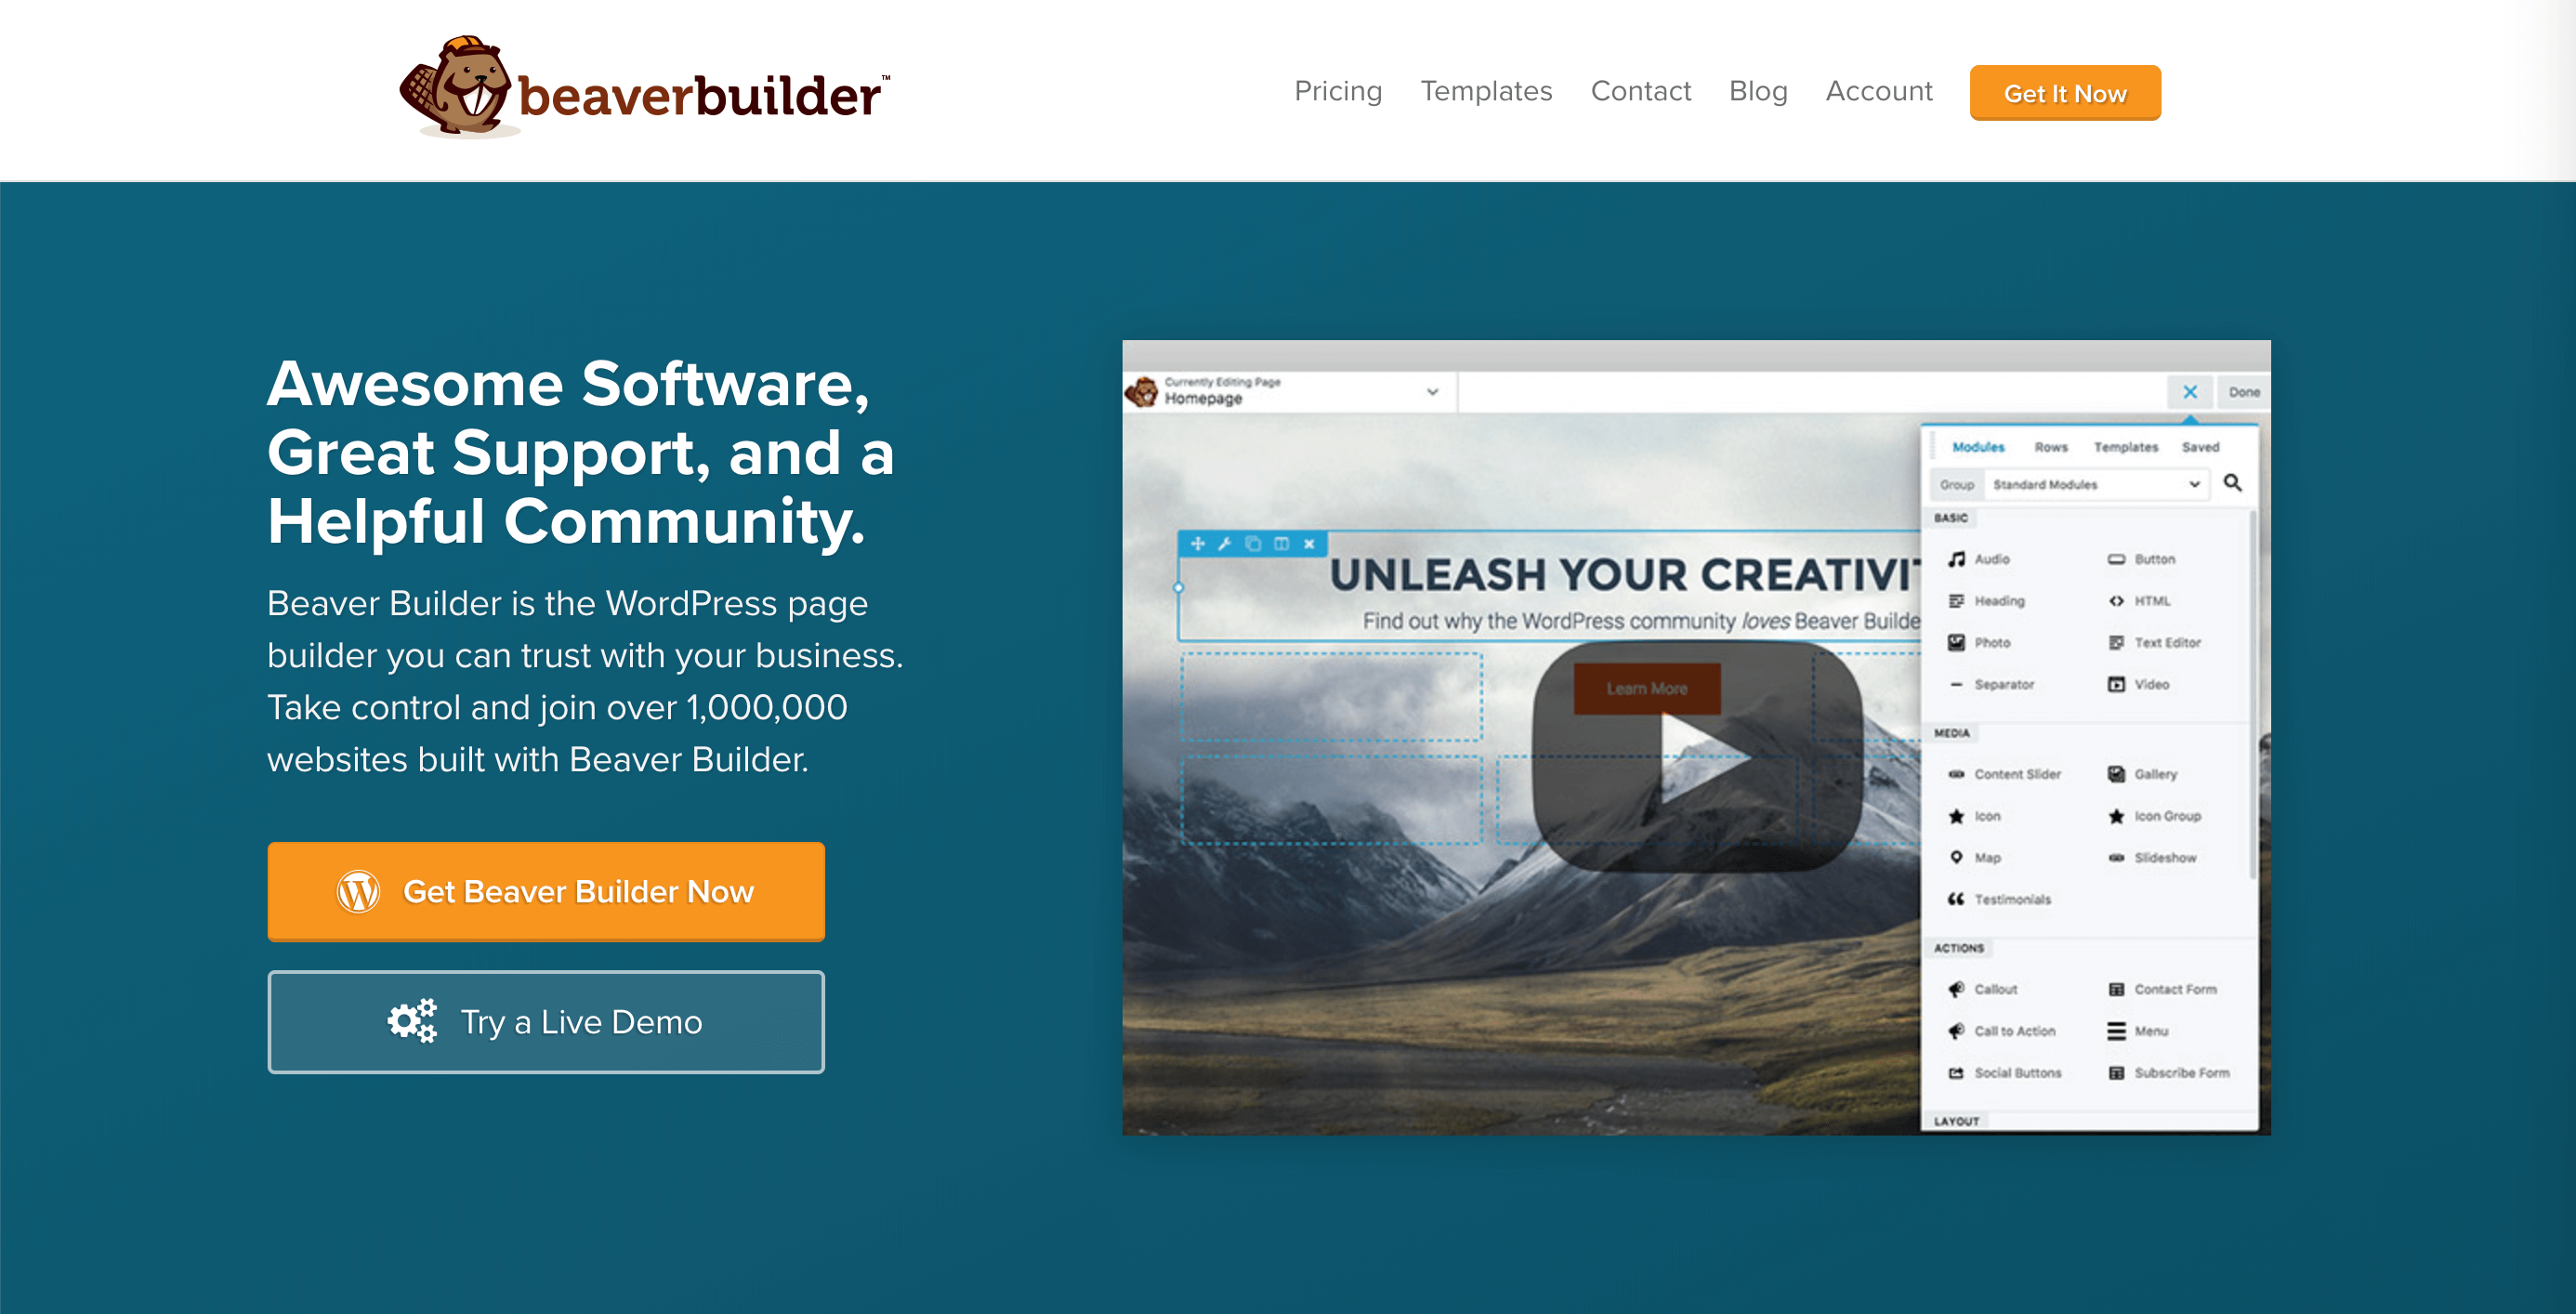 The Beaver Builder homepage, which features a dual-button CTA.